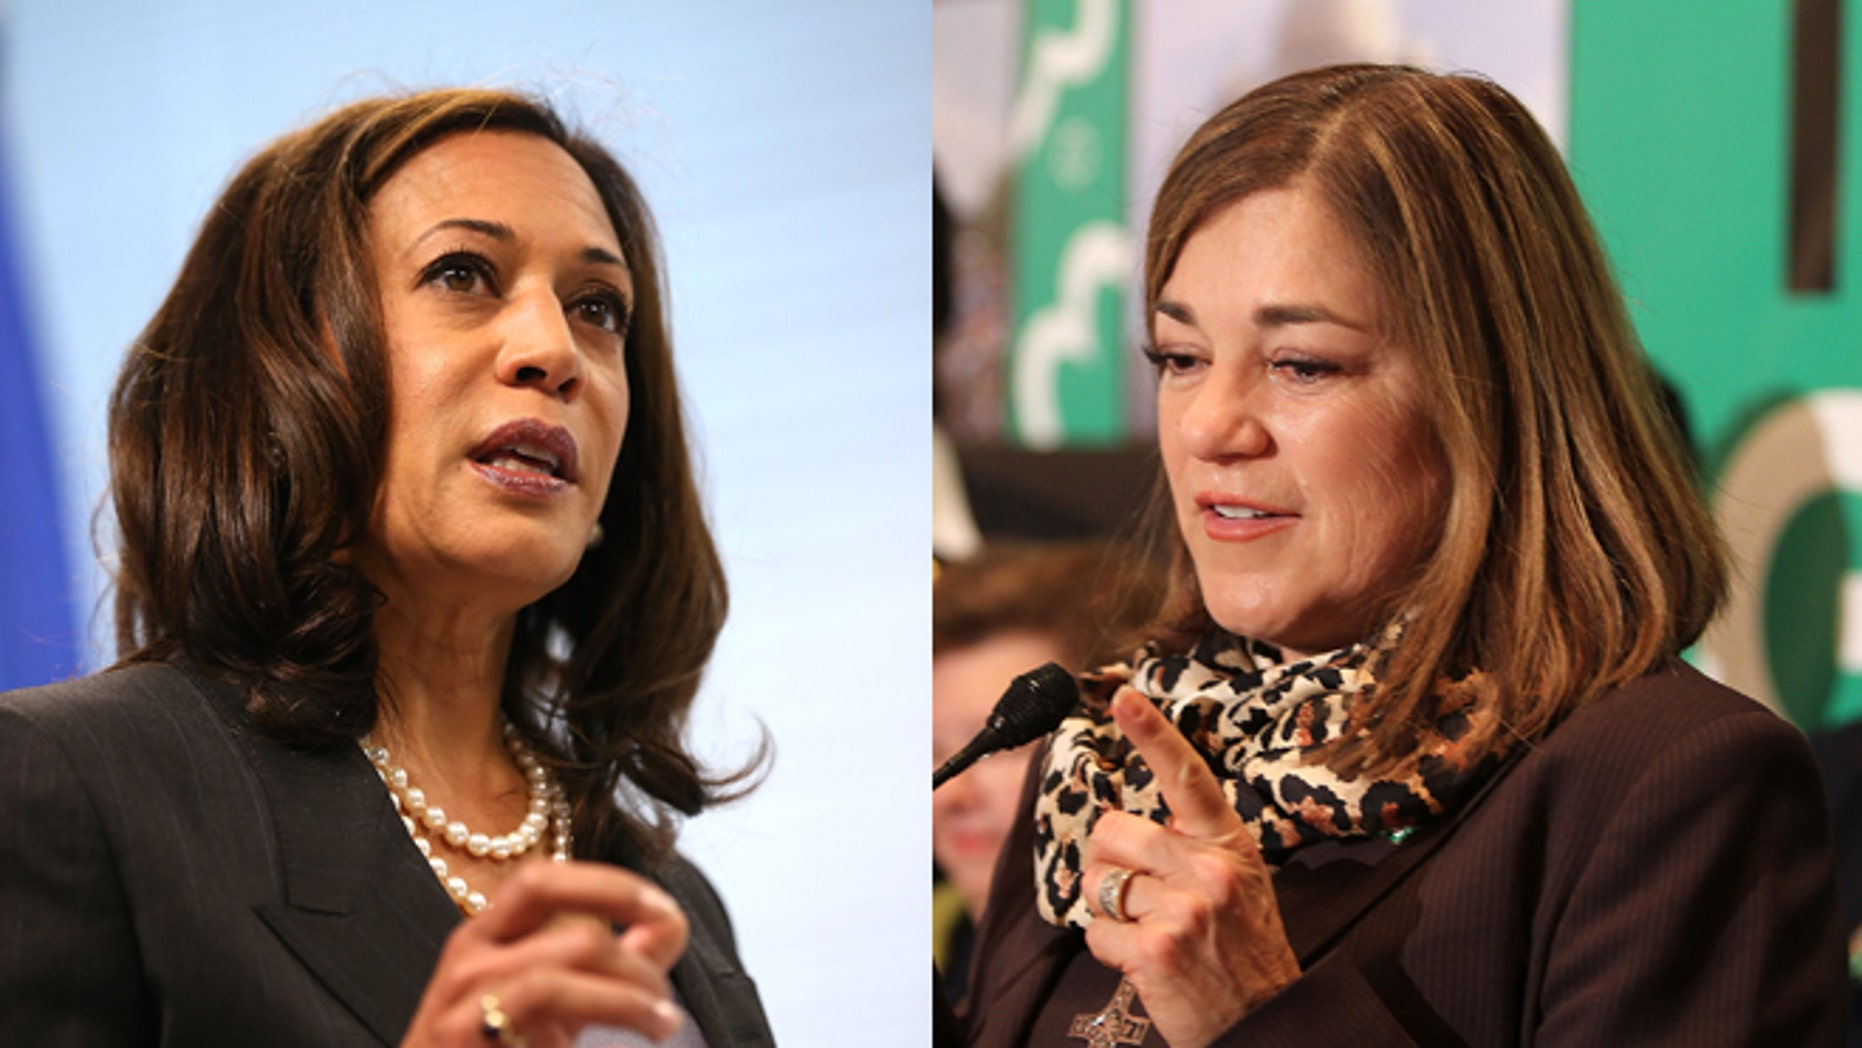 Kamala Harris (left) and Loretta Sanchez. (Photos: Getty Images)